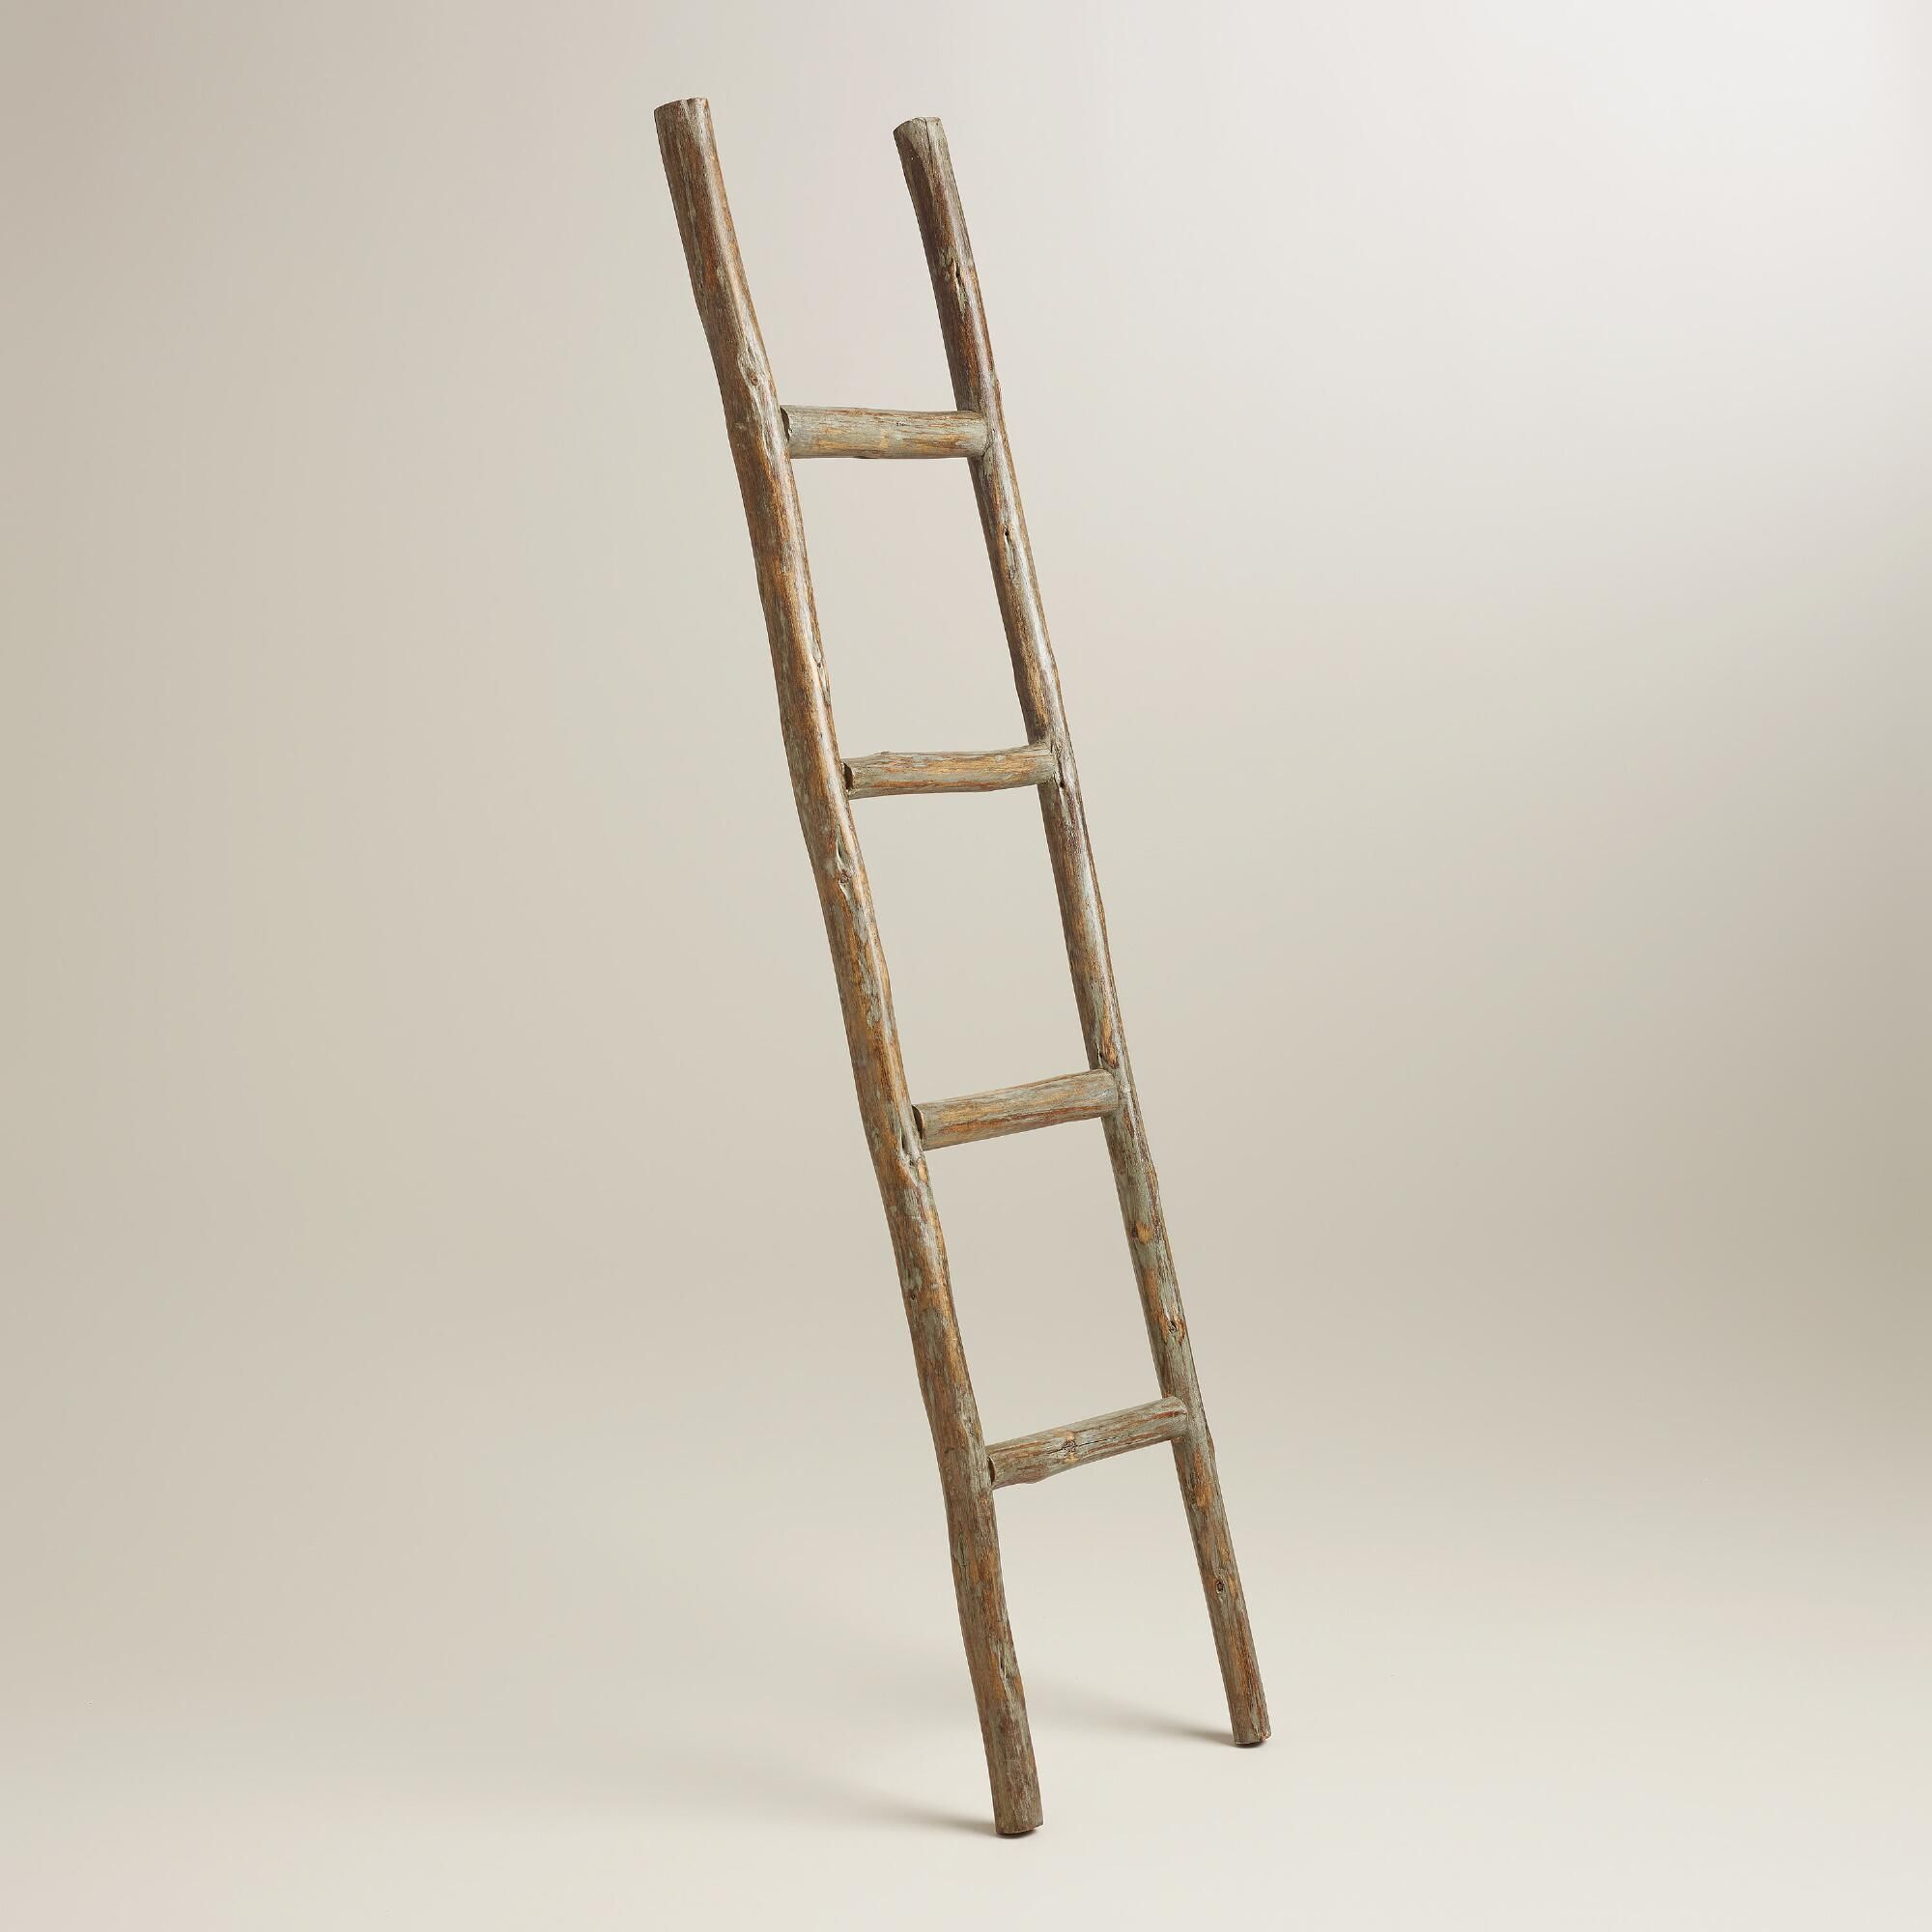 Crafted Of Wood, This Decorative Ladder Adds Interest To Any Room. Lean It  Against